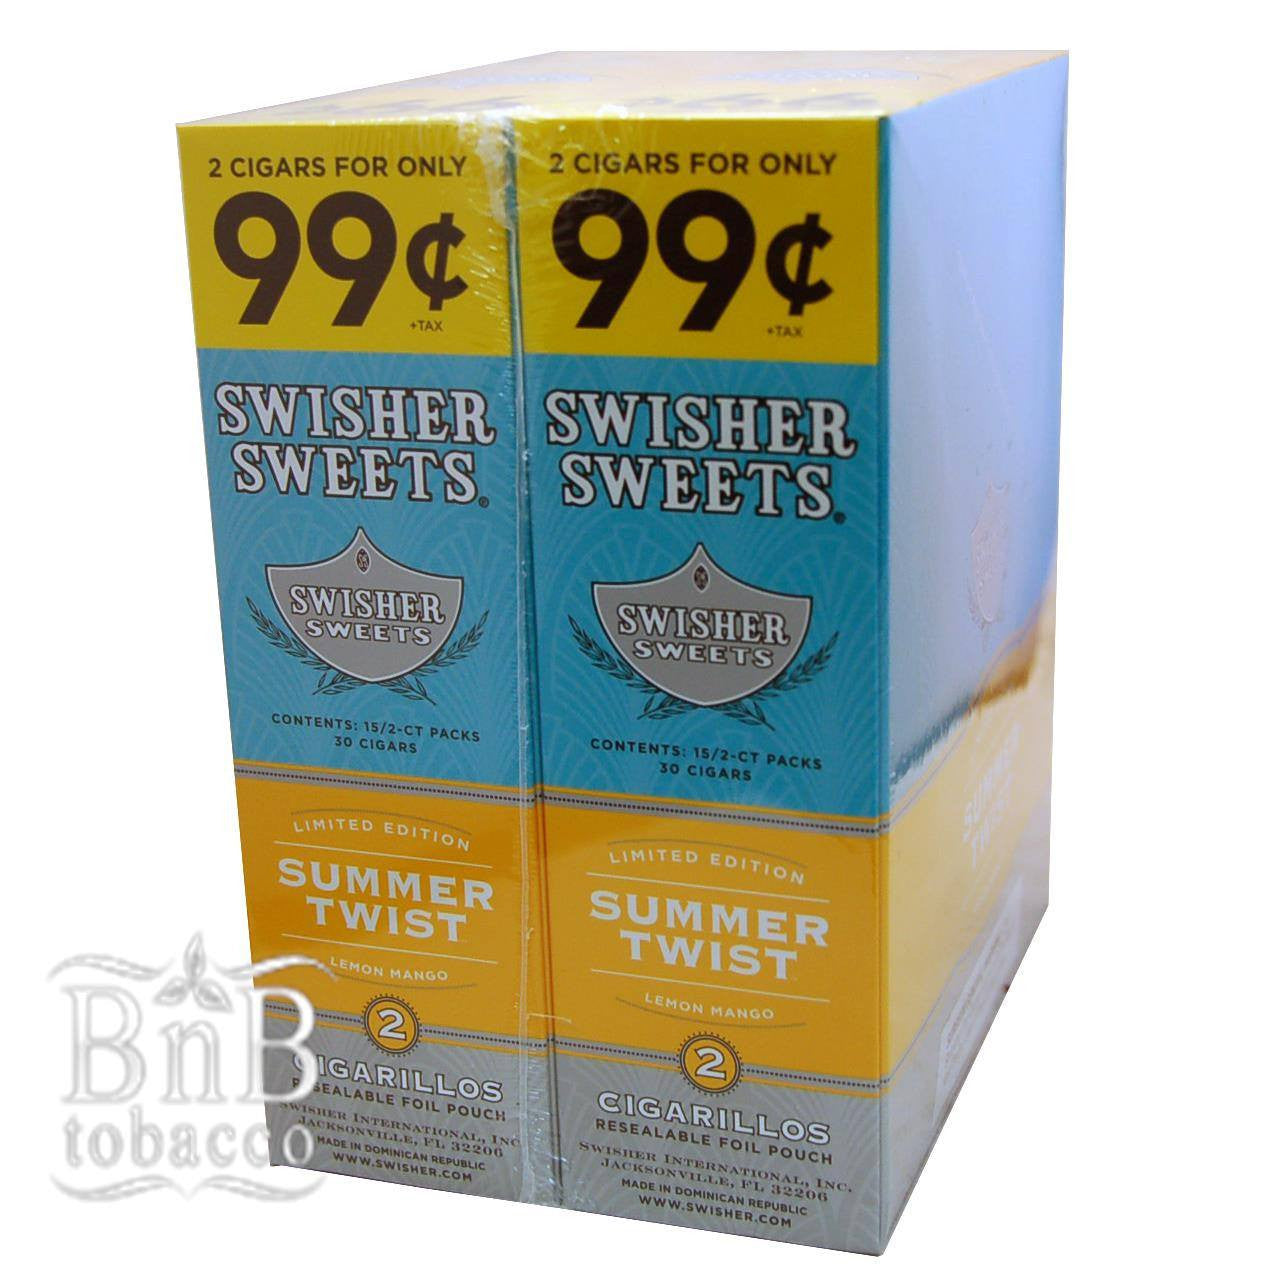 Swisher Sweets Summer Twist Cigarillos